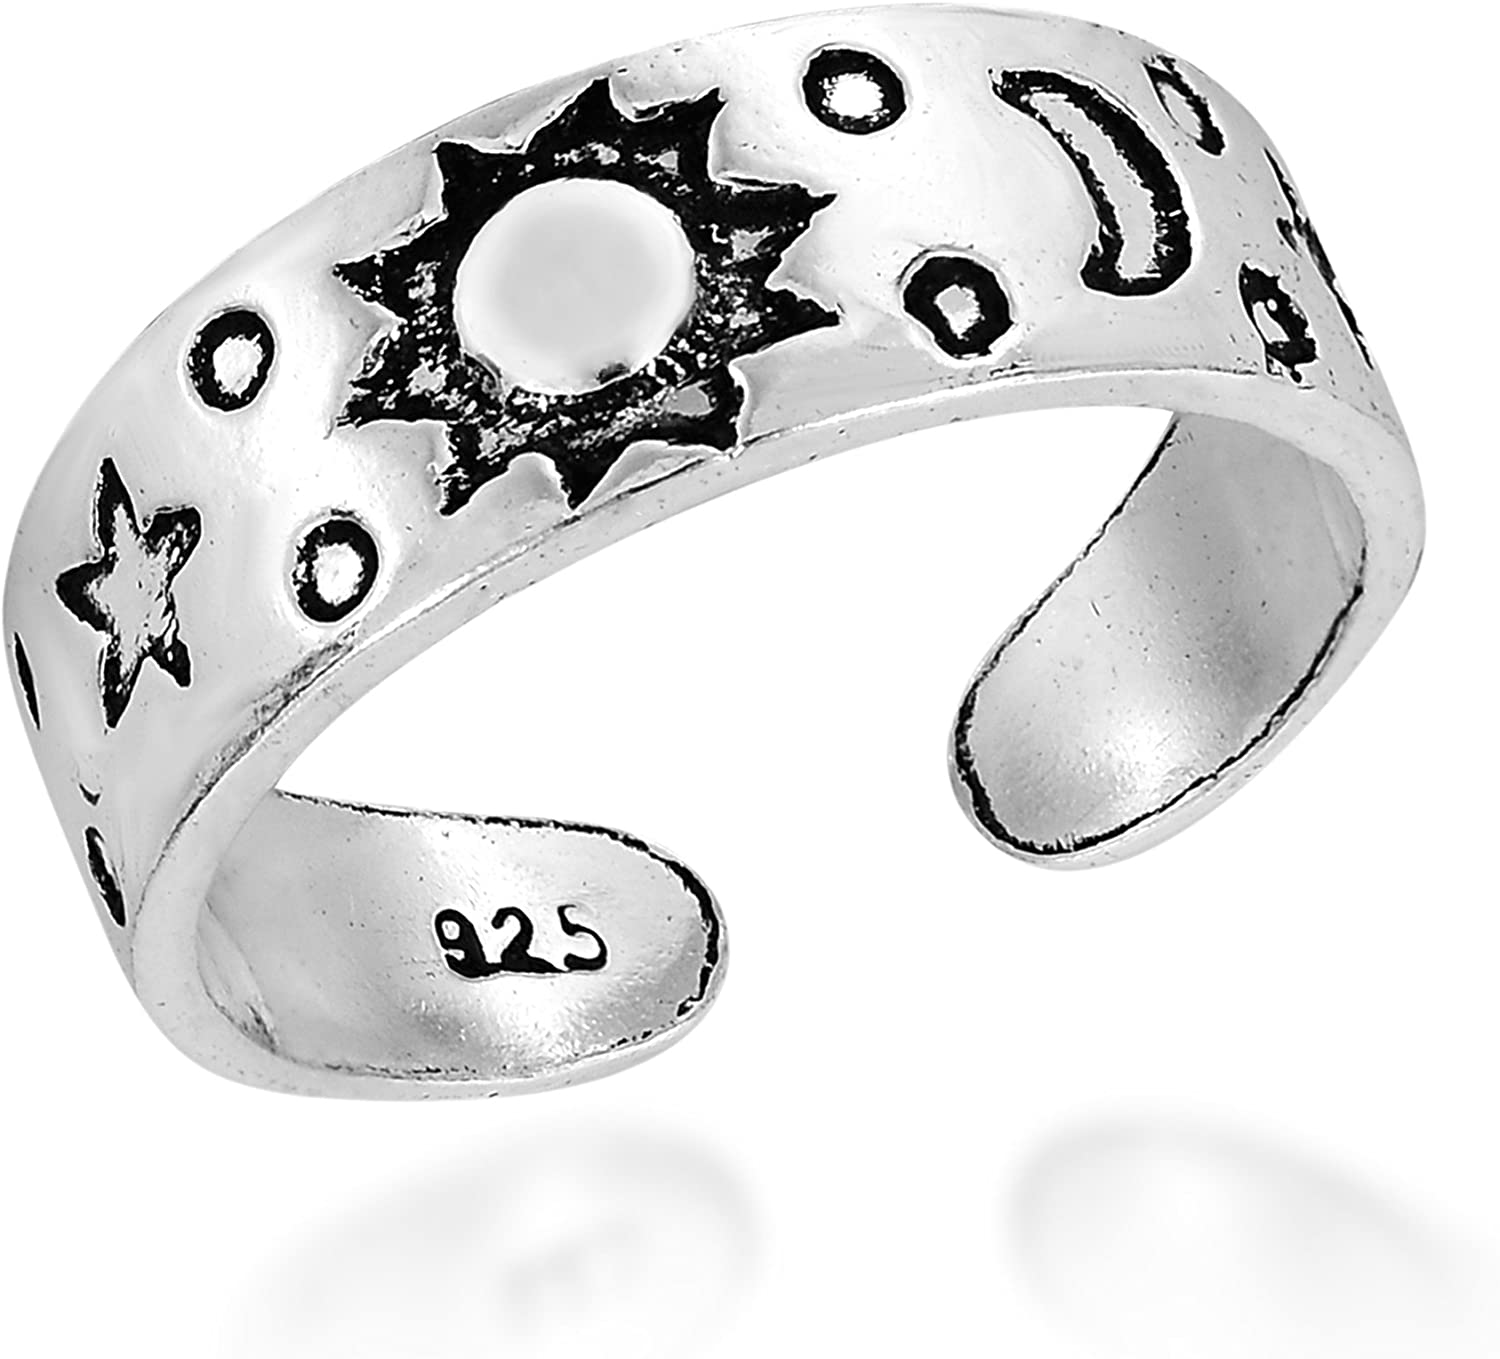 Celestial Sky Sun Moon and Star 70% OFF Outlet Mail order cheap .925 Sterling or Ring Silver Toe